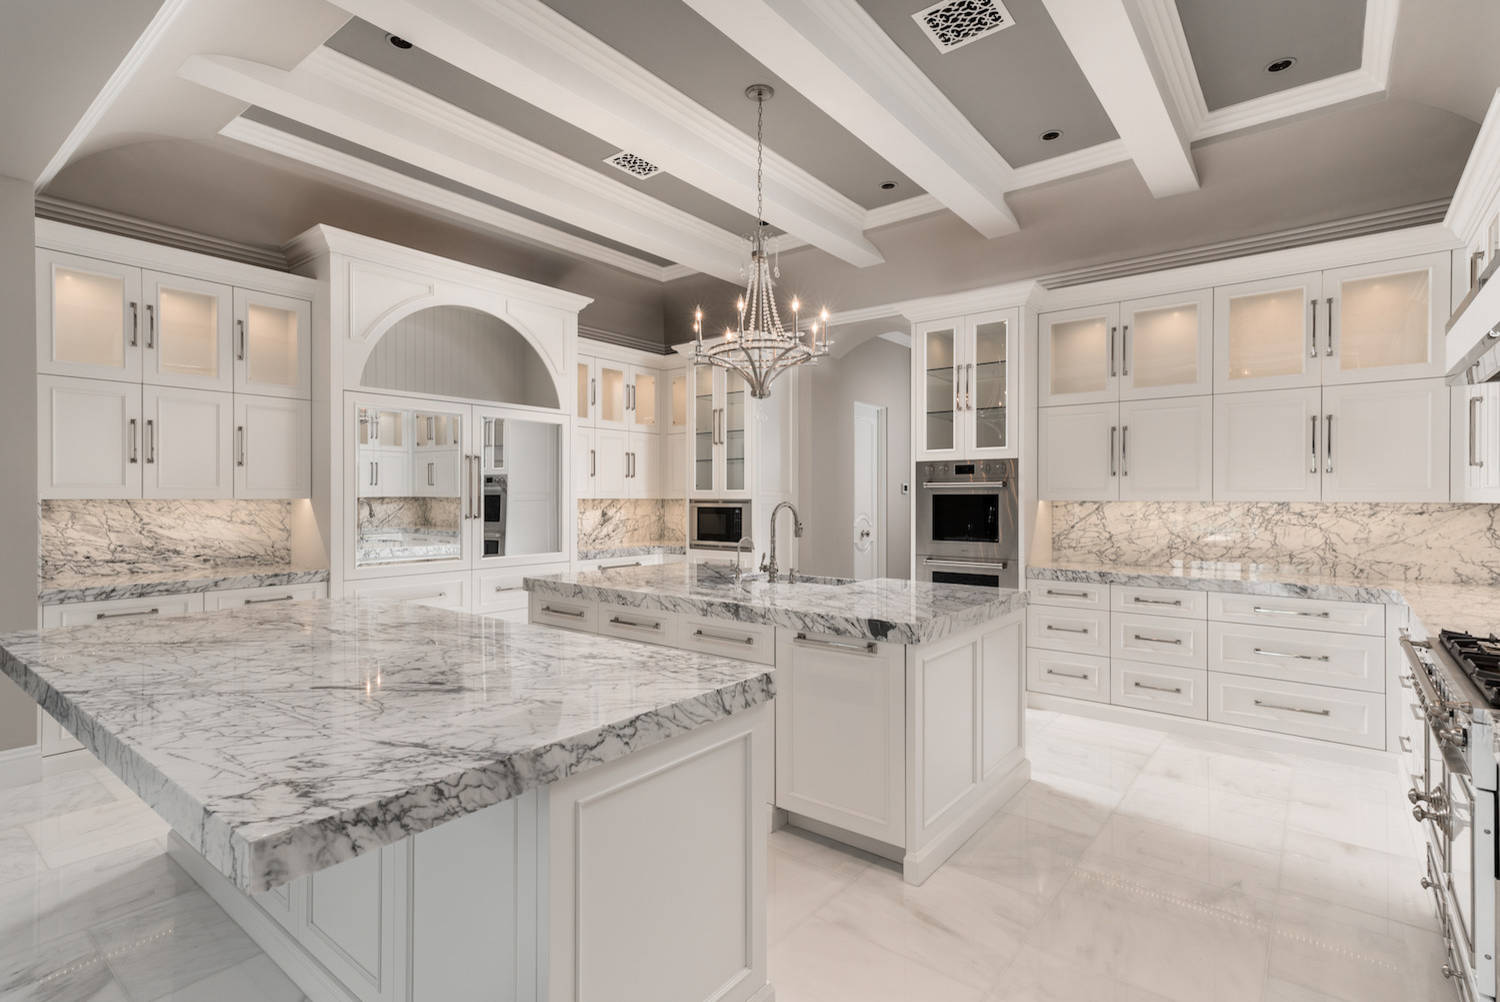 10 Beautiful Modern Marble Floor Kitchen Pictures & Ideas